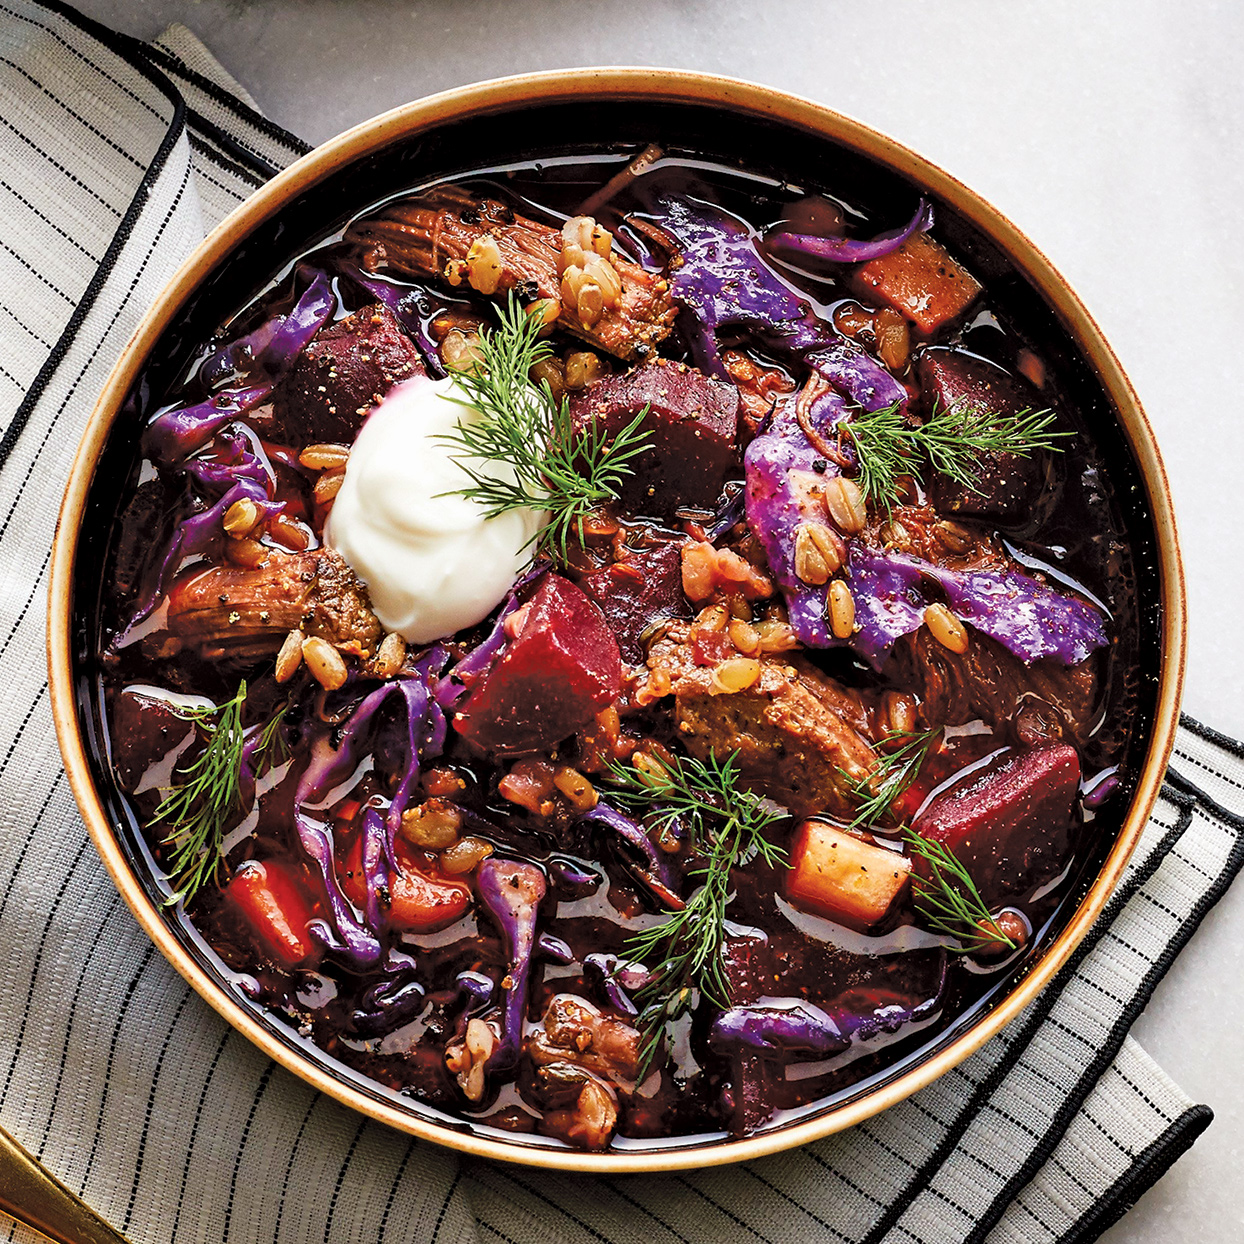 Borscht is an Eastern European soup that typically features beets as a prominent ingredient, thus the resulting dish has a purple-red color. Our slow-cooker rendition is literally beefed up with brisket and showcases whole-grain rye berries, a source of fiber.